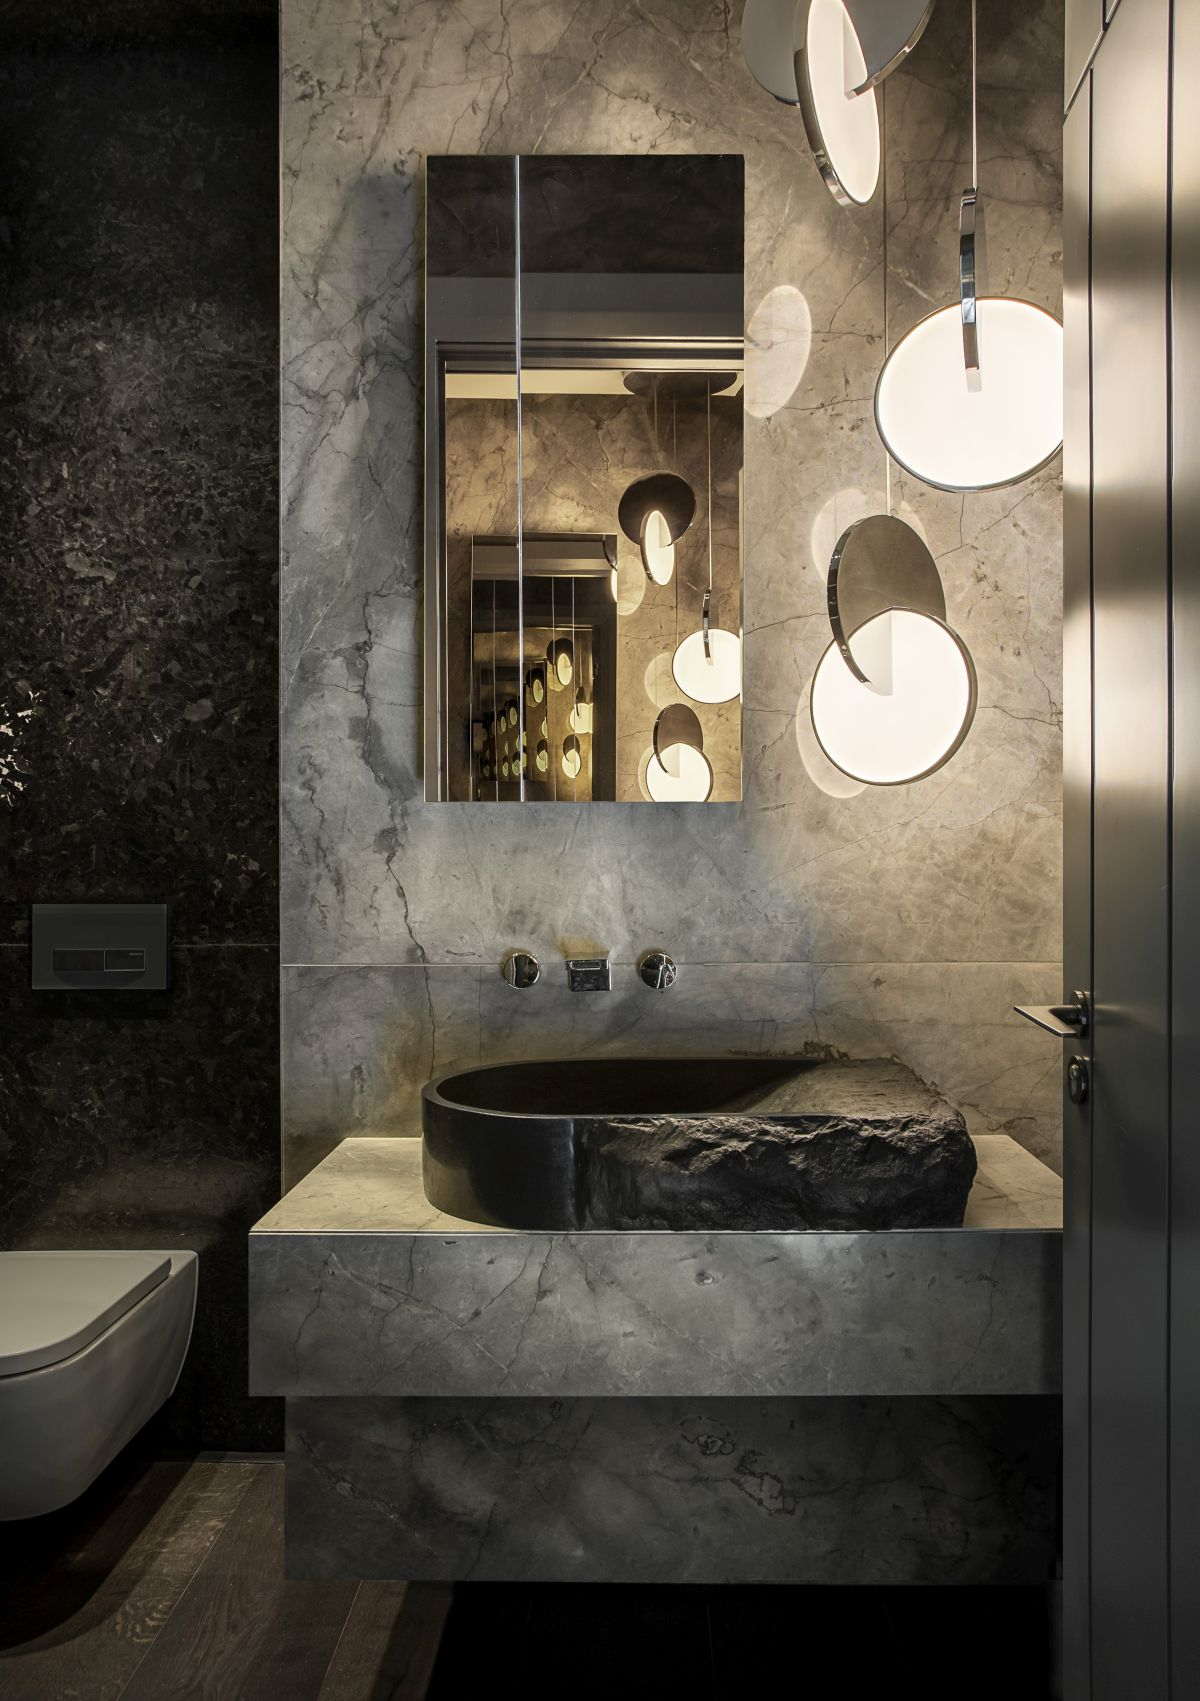 A sculptural washbasin and a set of cascading pendant lamps give this bathroom a very sophisticated look